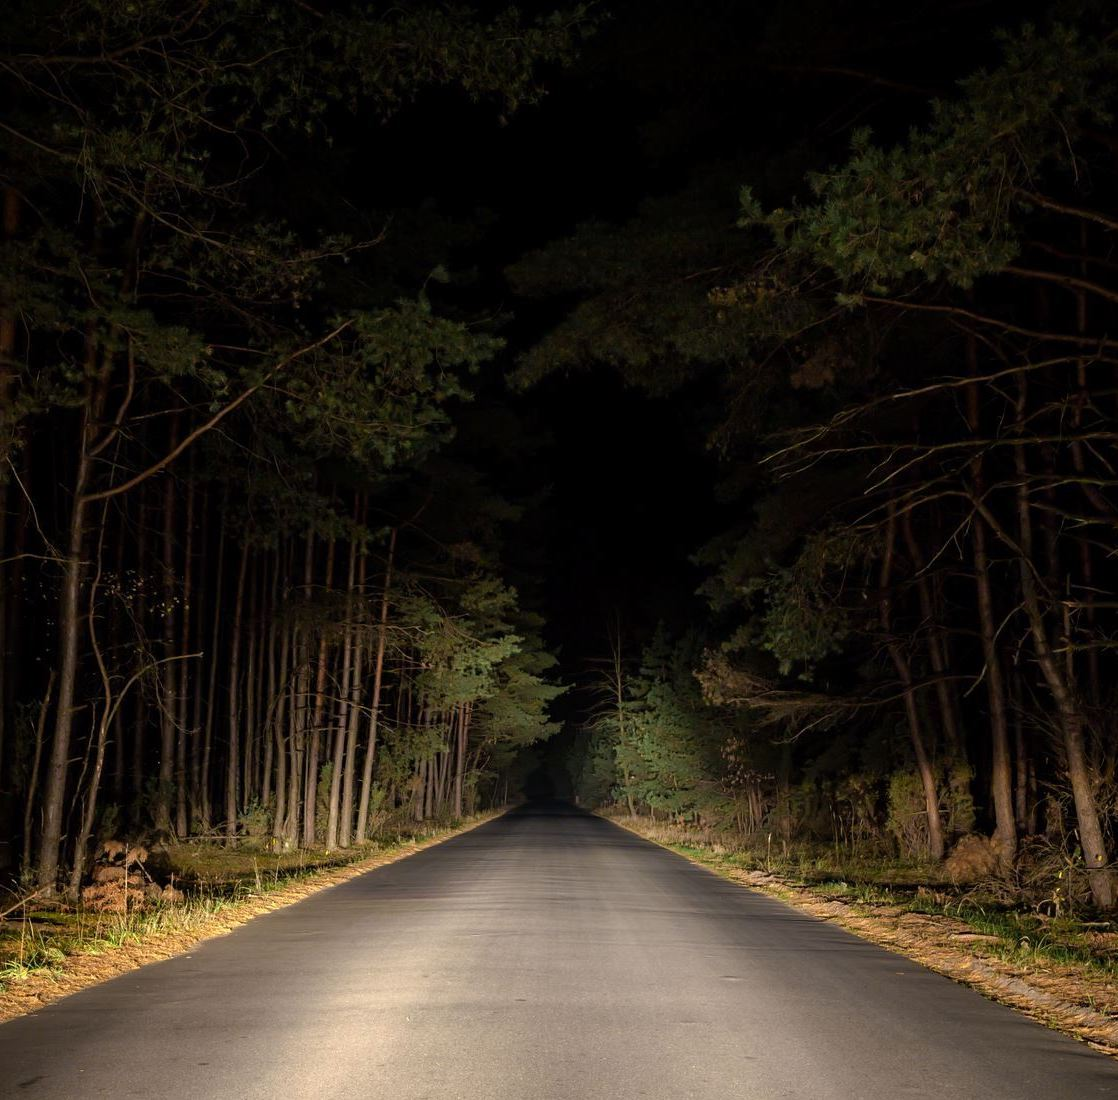 image of road surrounded by tress in the dark